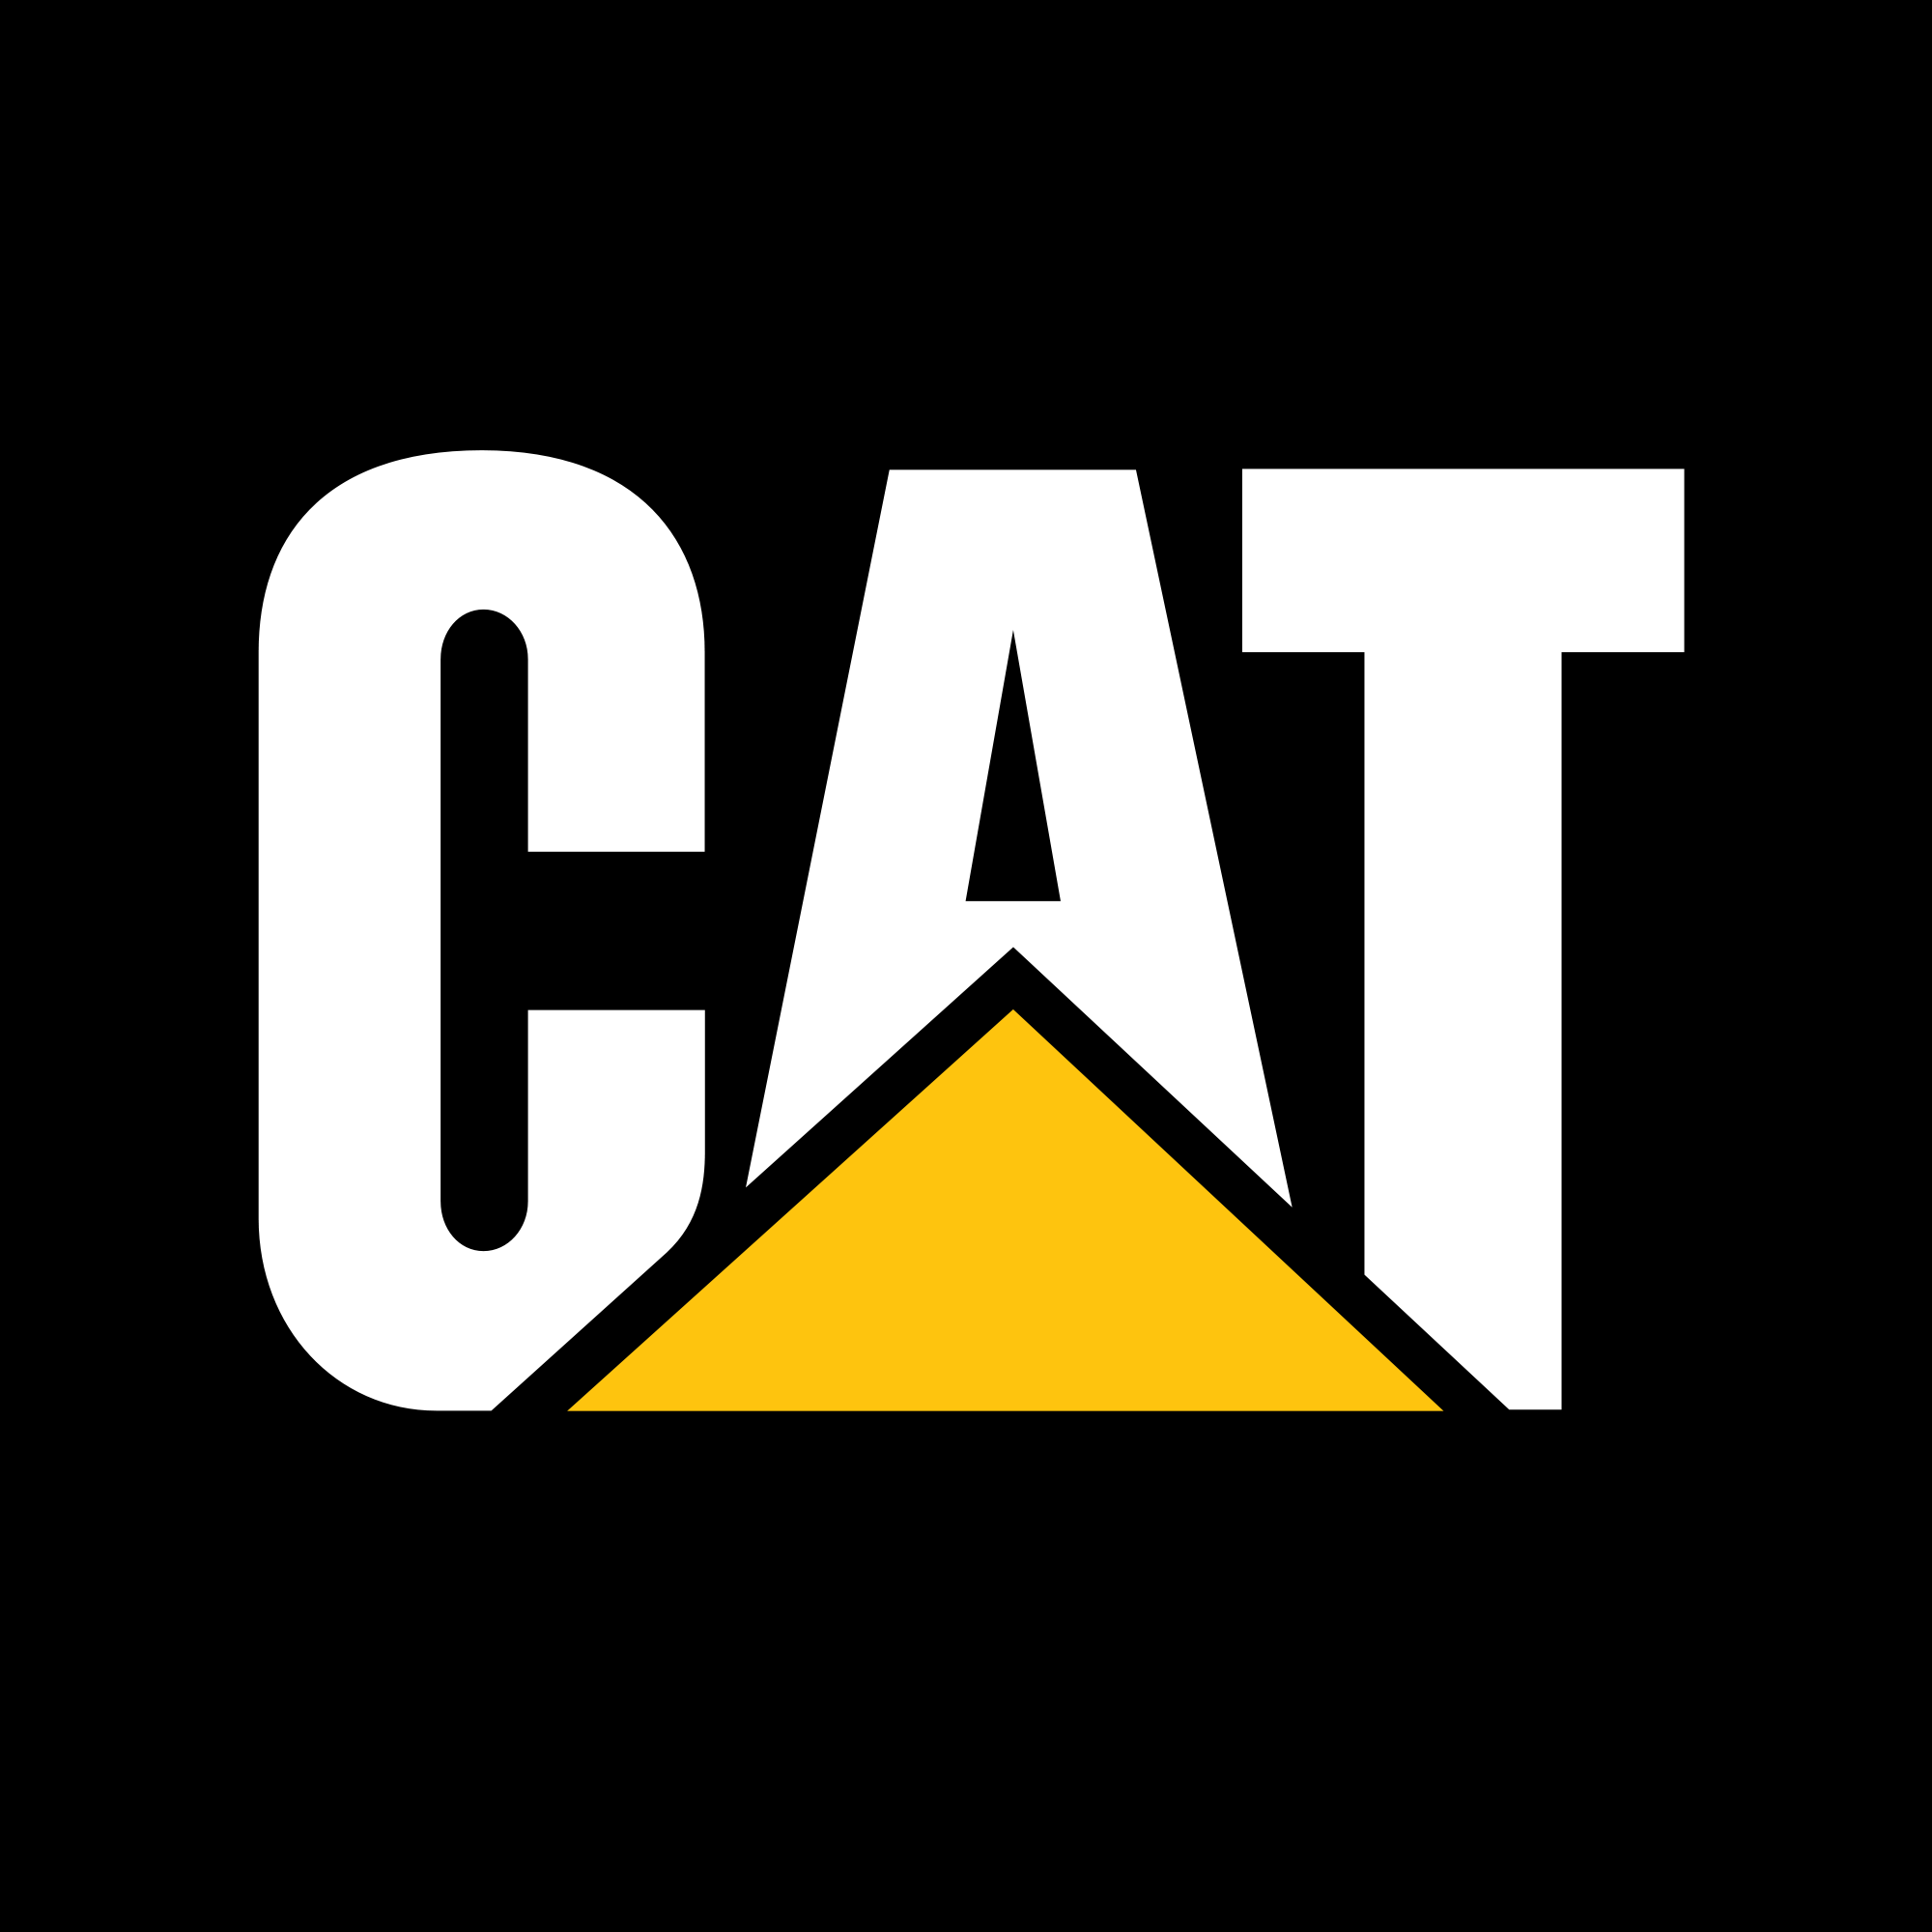 https://jomat.com/wp-content/uploads/2018/10/Caterpillar_logo.png